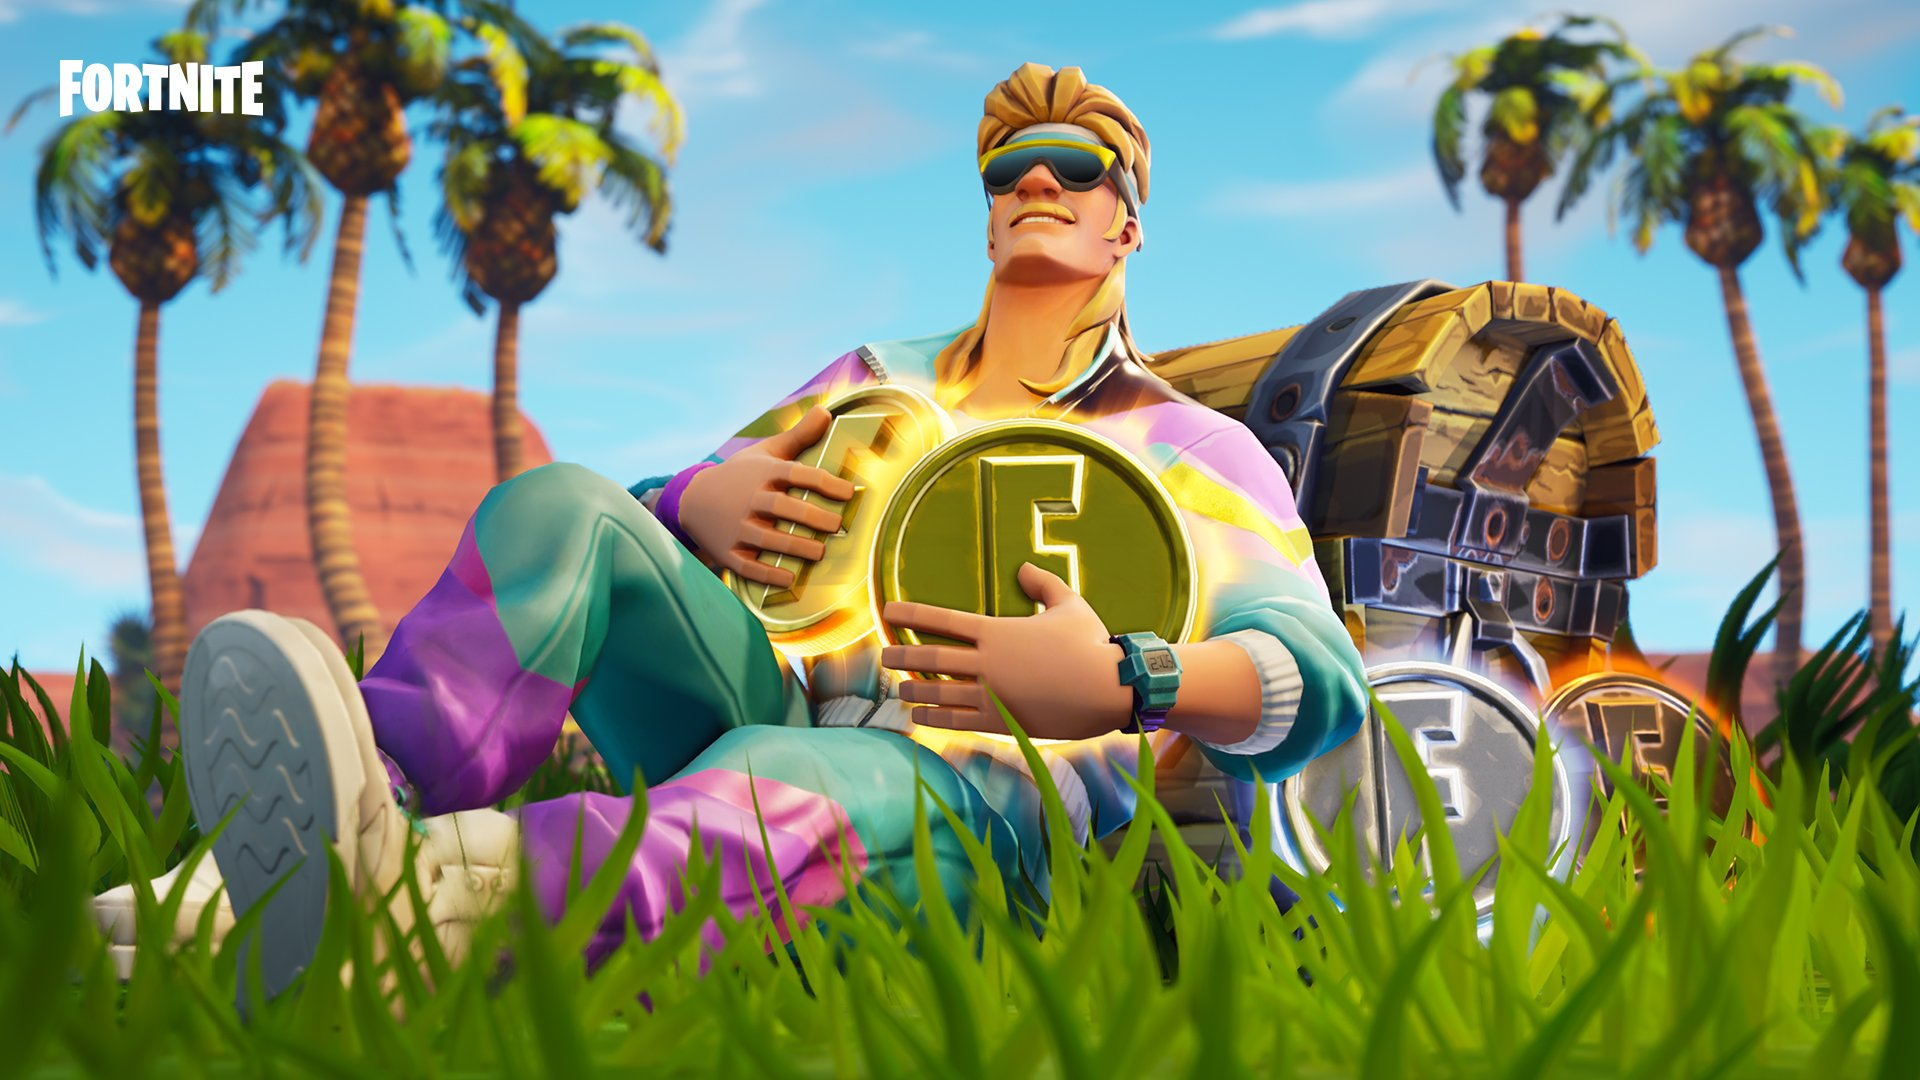 Fortnite adds Score Royale mode, and a Boogiedown emote that's easy